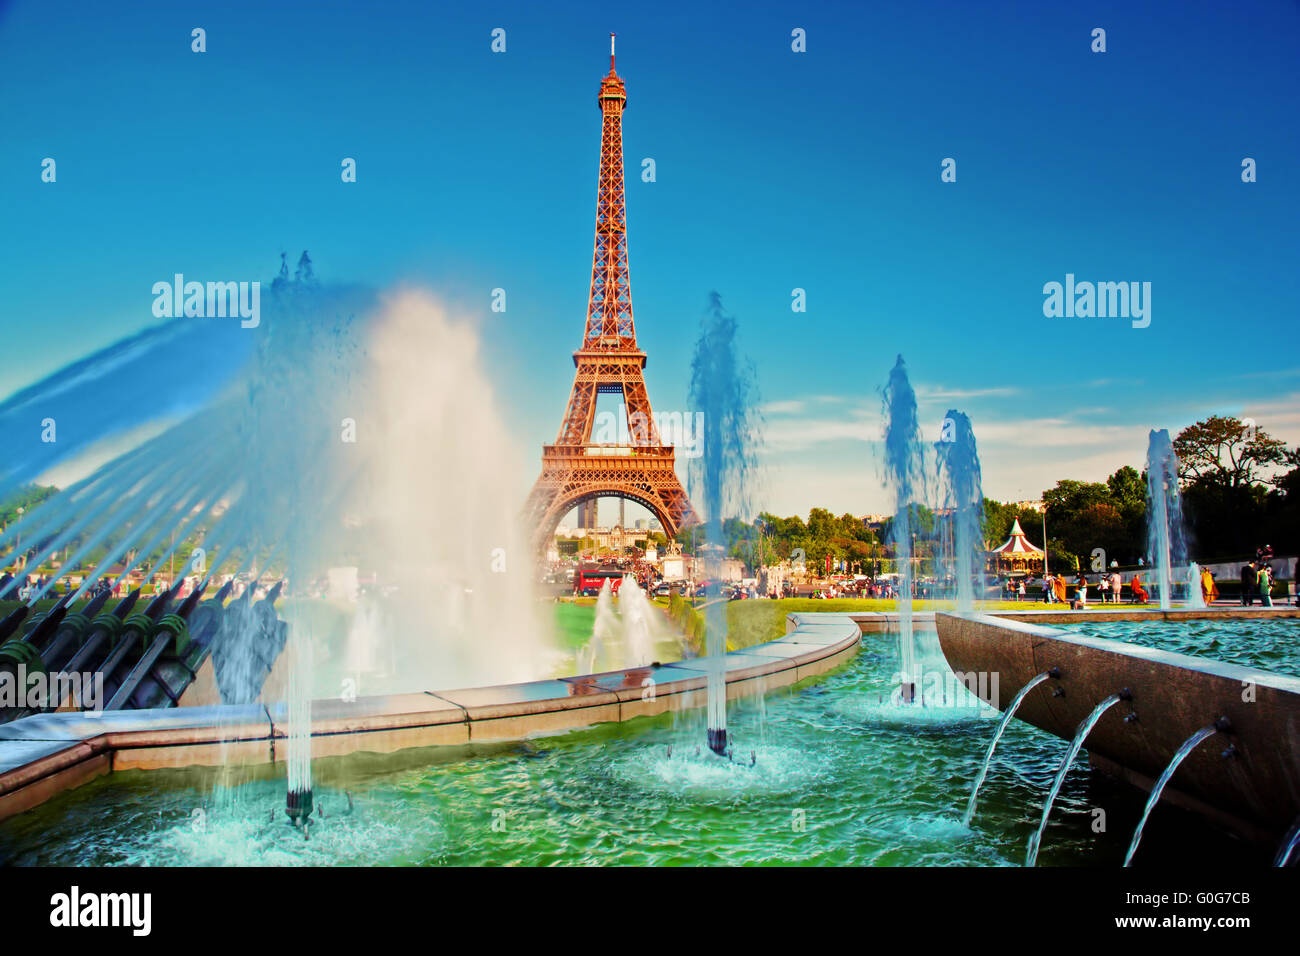 Eiffel Tower seen from fountain at Jardins du Trocadero at a sunny summer day - Stock Image